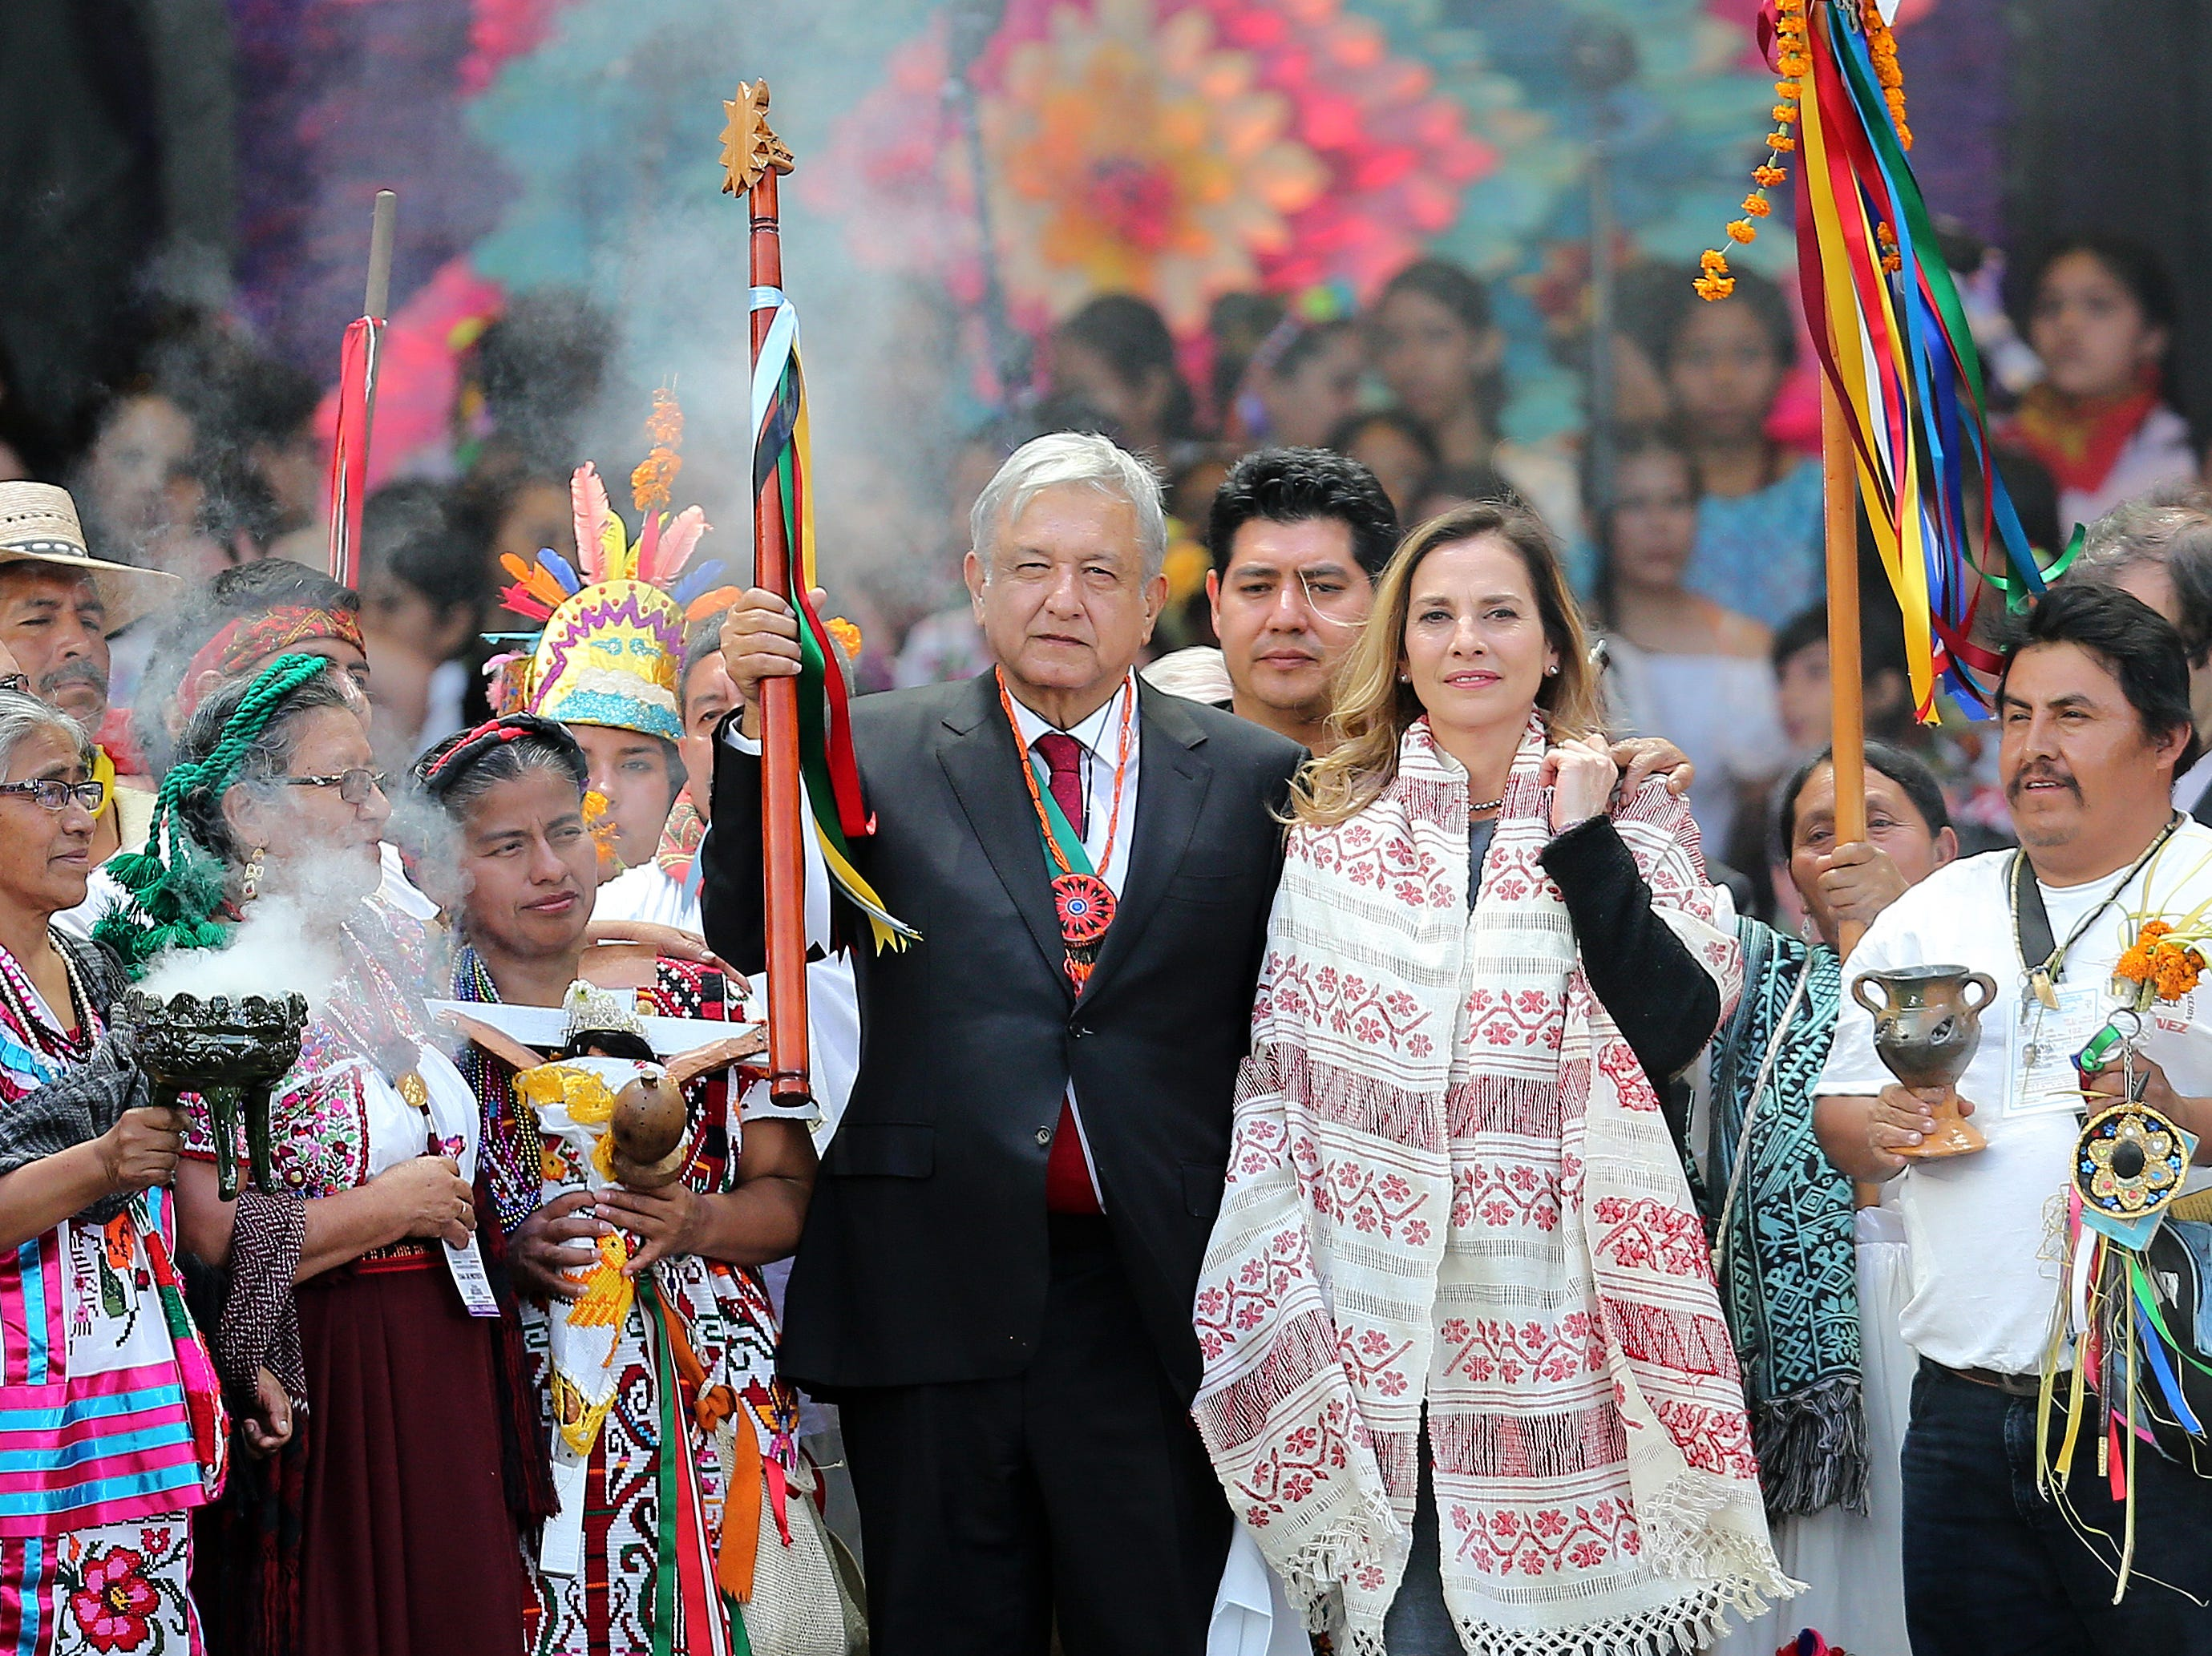 MEXICO CITY, MEXICO - DECEMBER 01: Andres Manuel Lopez Obrador (L), President of Mexico poses with the baton alongside his wife Beatriz Gutierrez during the events of the Presidential Investiture as part of the 65th Mexico Presidential Inauguration at Zocalo on December 01, 2018 in Mexico City, Mexico. (Photo by Manuel Velasquez/Getty Images)